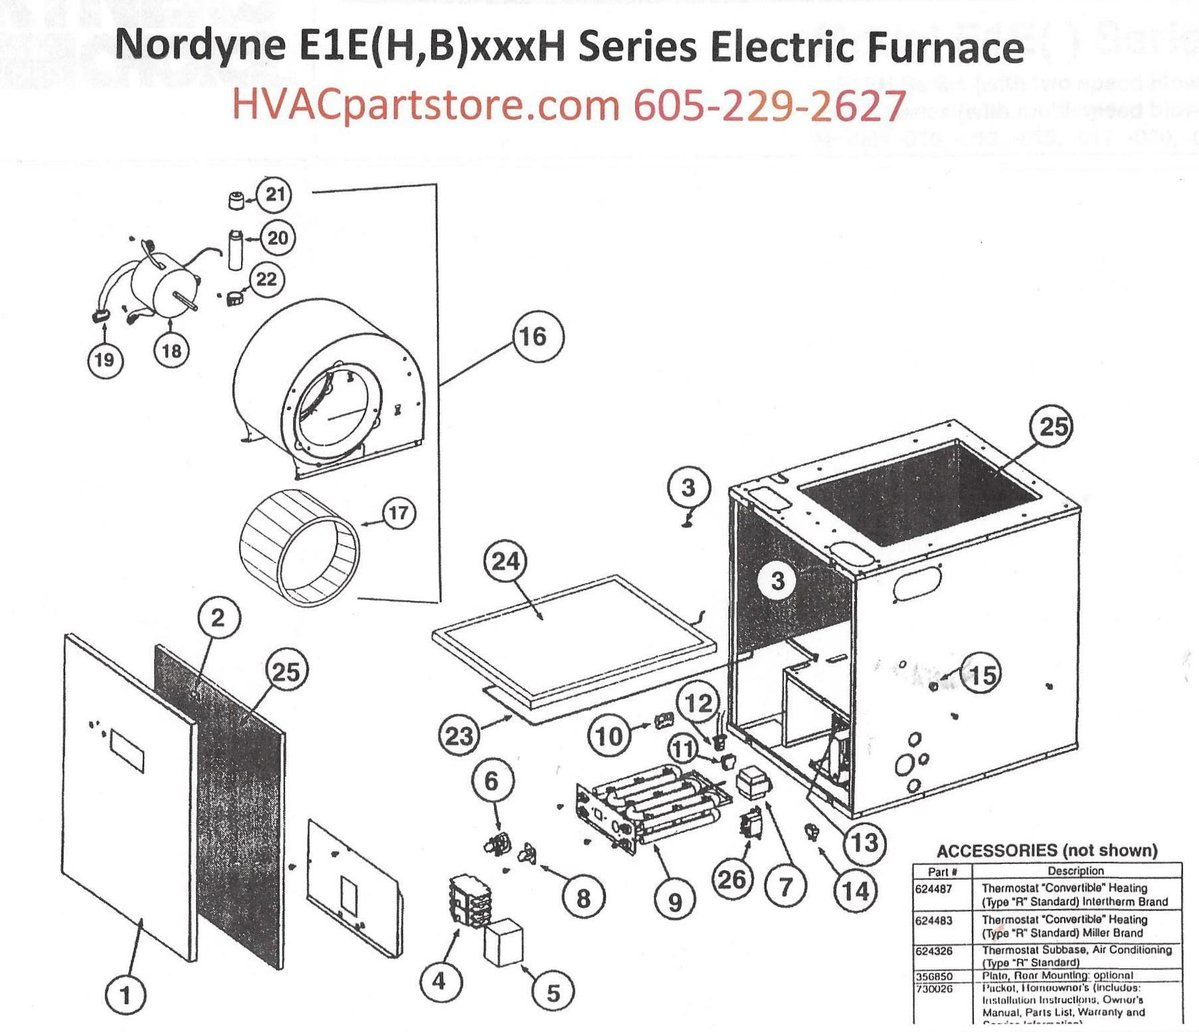 mobile home intertherm furnace wiring zx 9994  intertherm eletric furnace parts diagram download diagram  zx 9994  intertherm eletric furnace